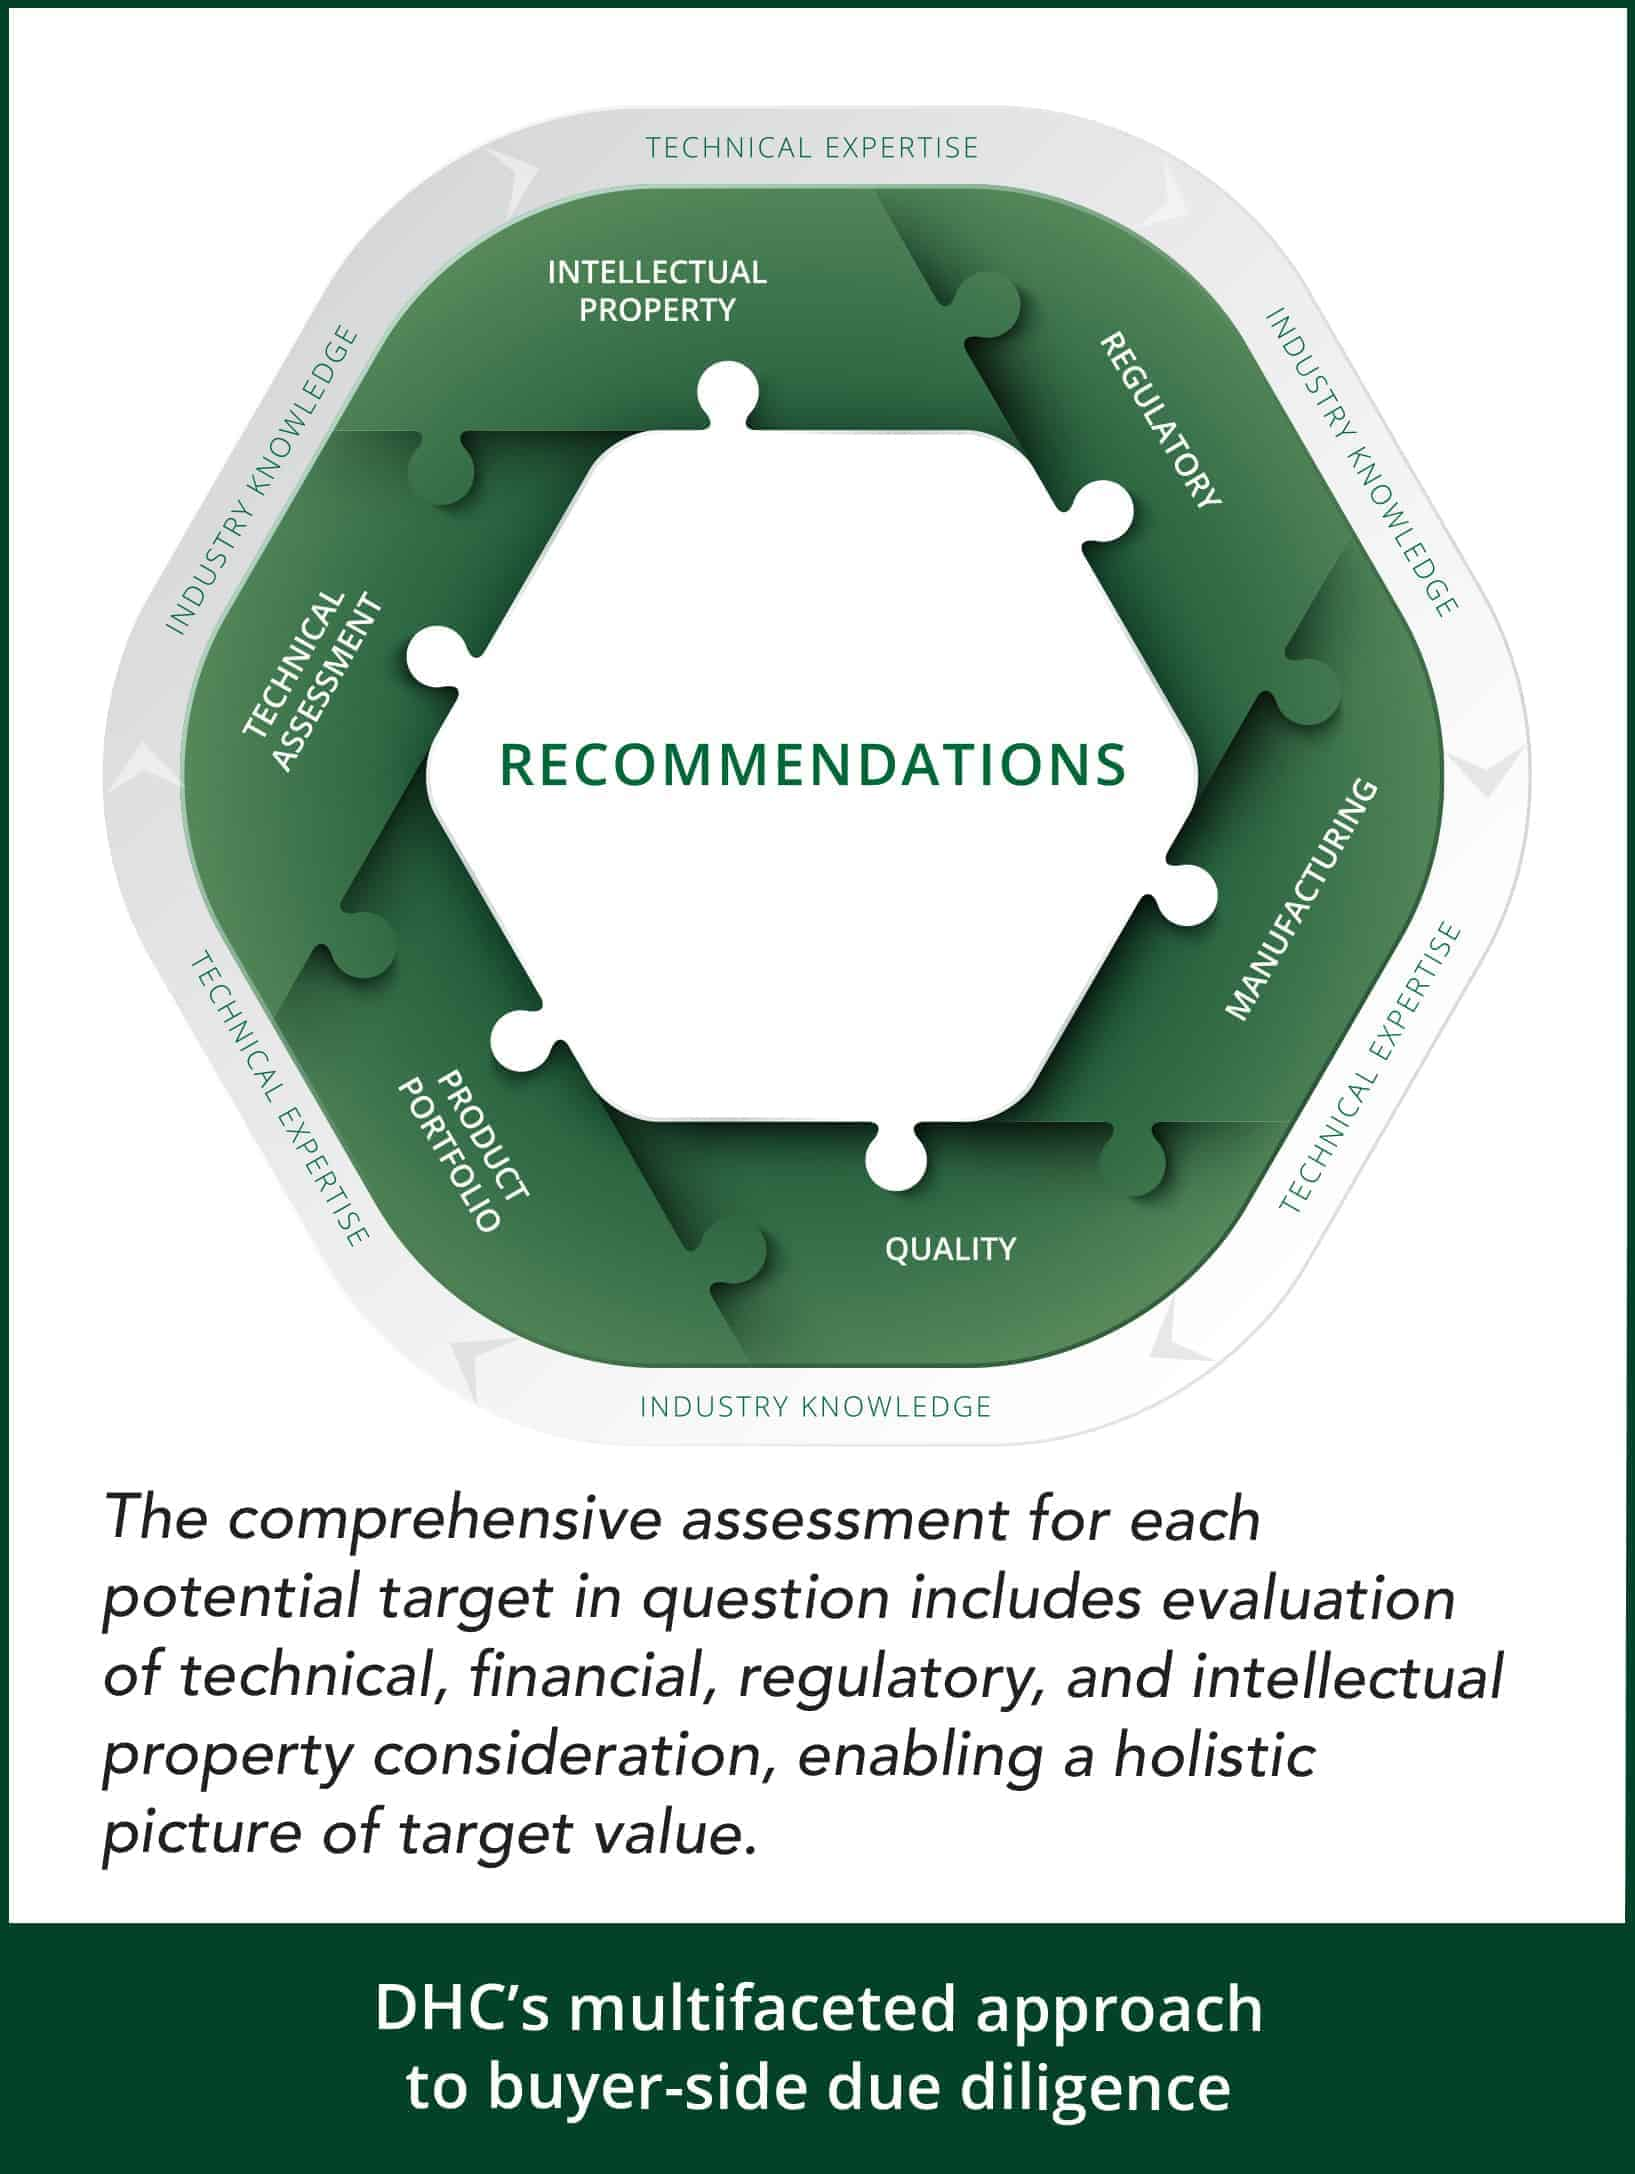 A puzzle, showing that DHC diligence recommendations are linked to many other elements of the field.